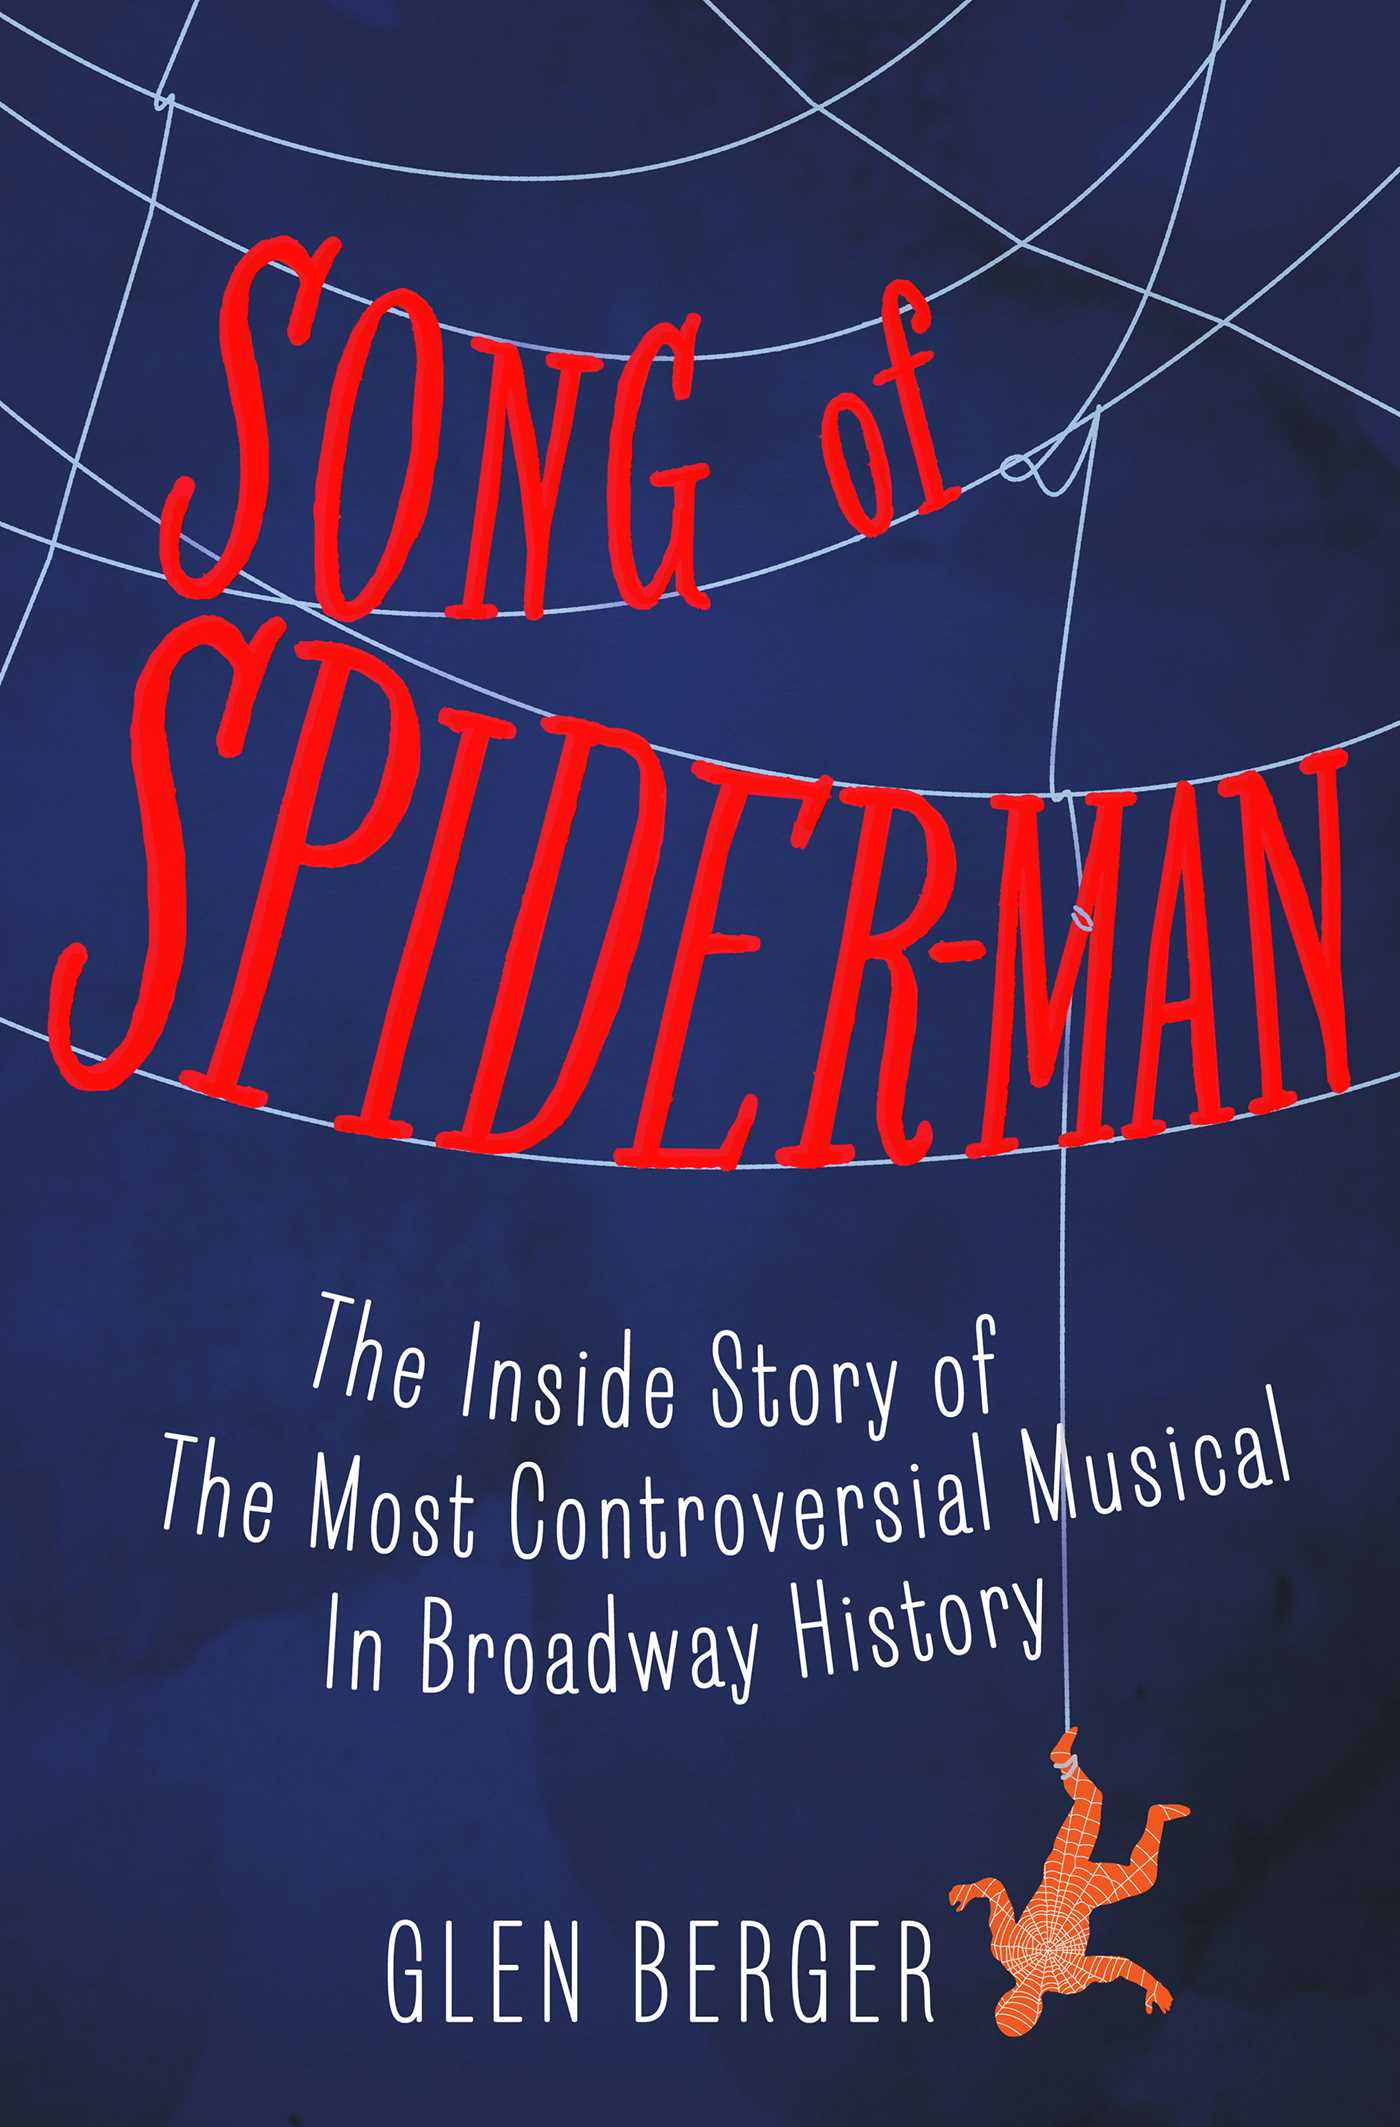 Song of Spider-Man The Inside Story of the Most Controversial Musical in Broadway History